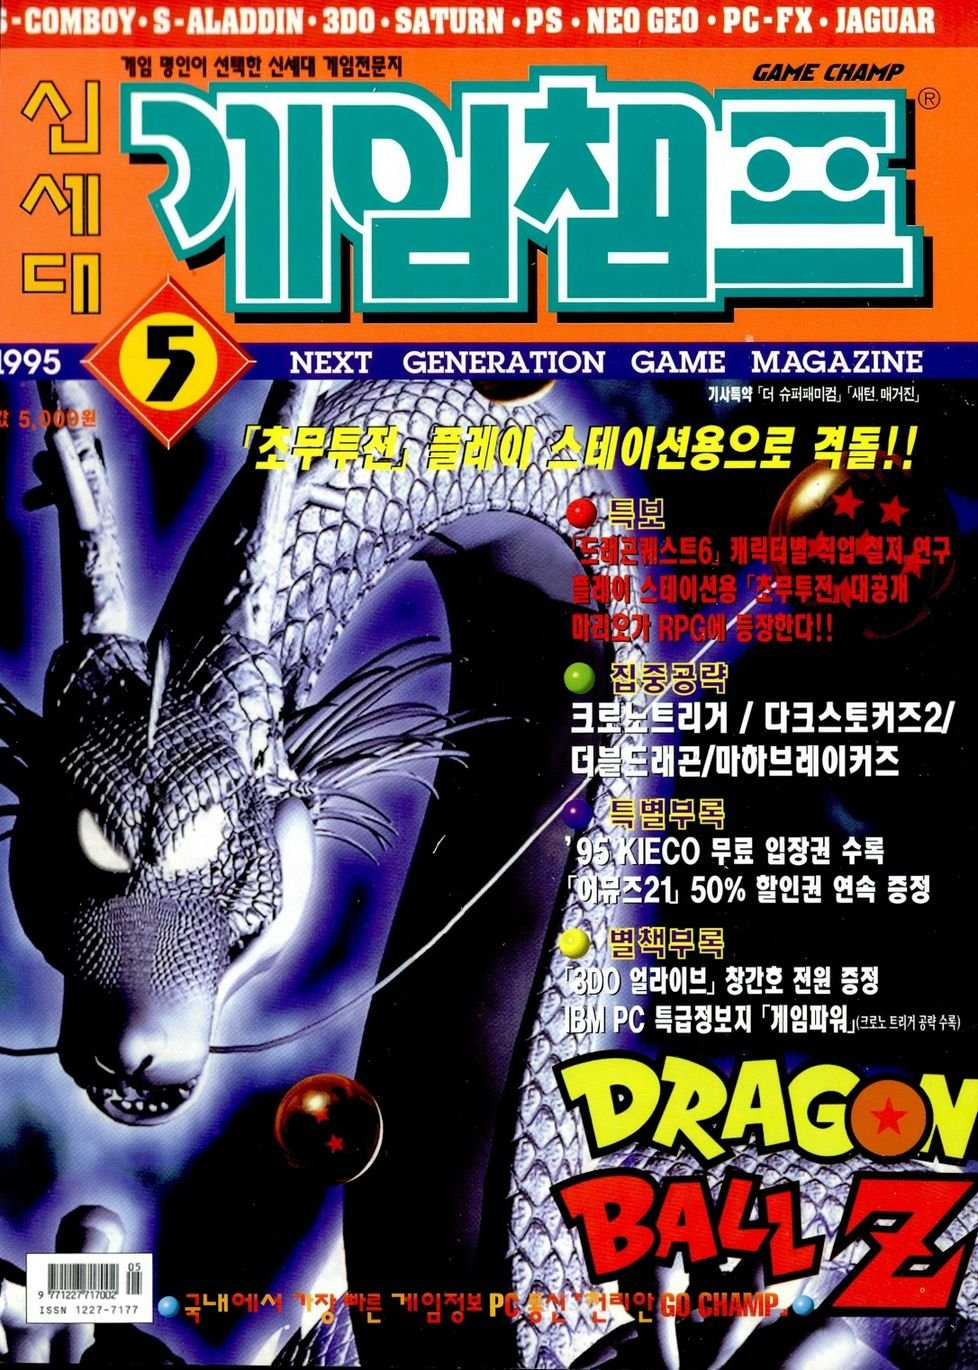 Game Champ Issue 030 (May 1995)